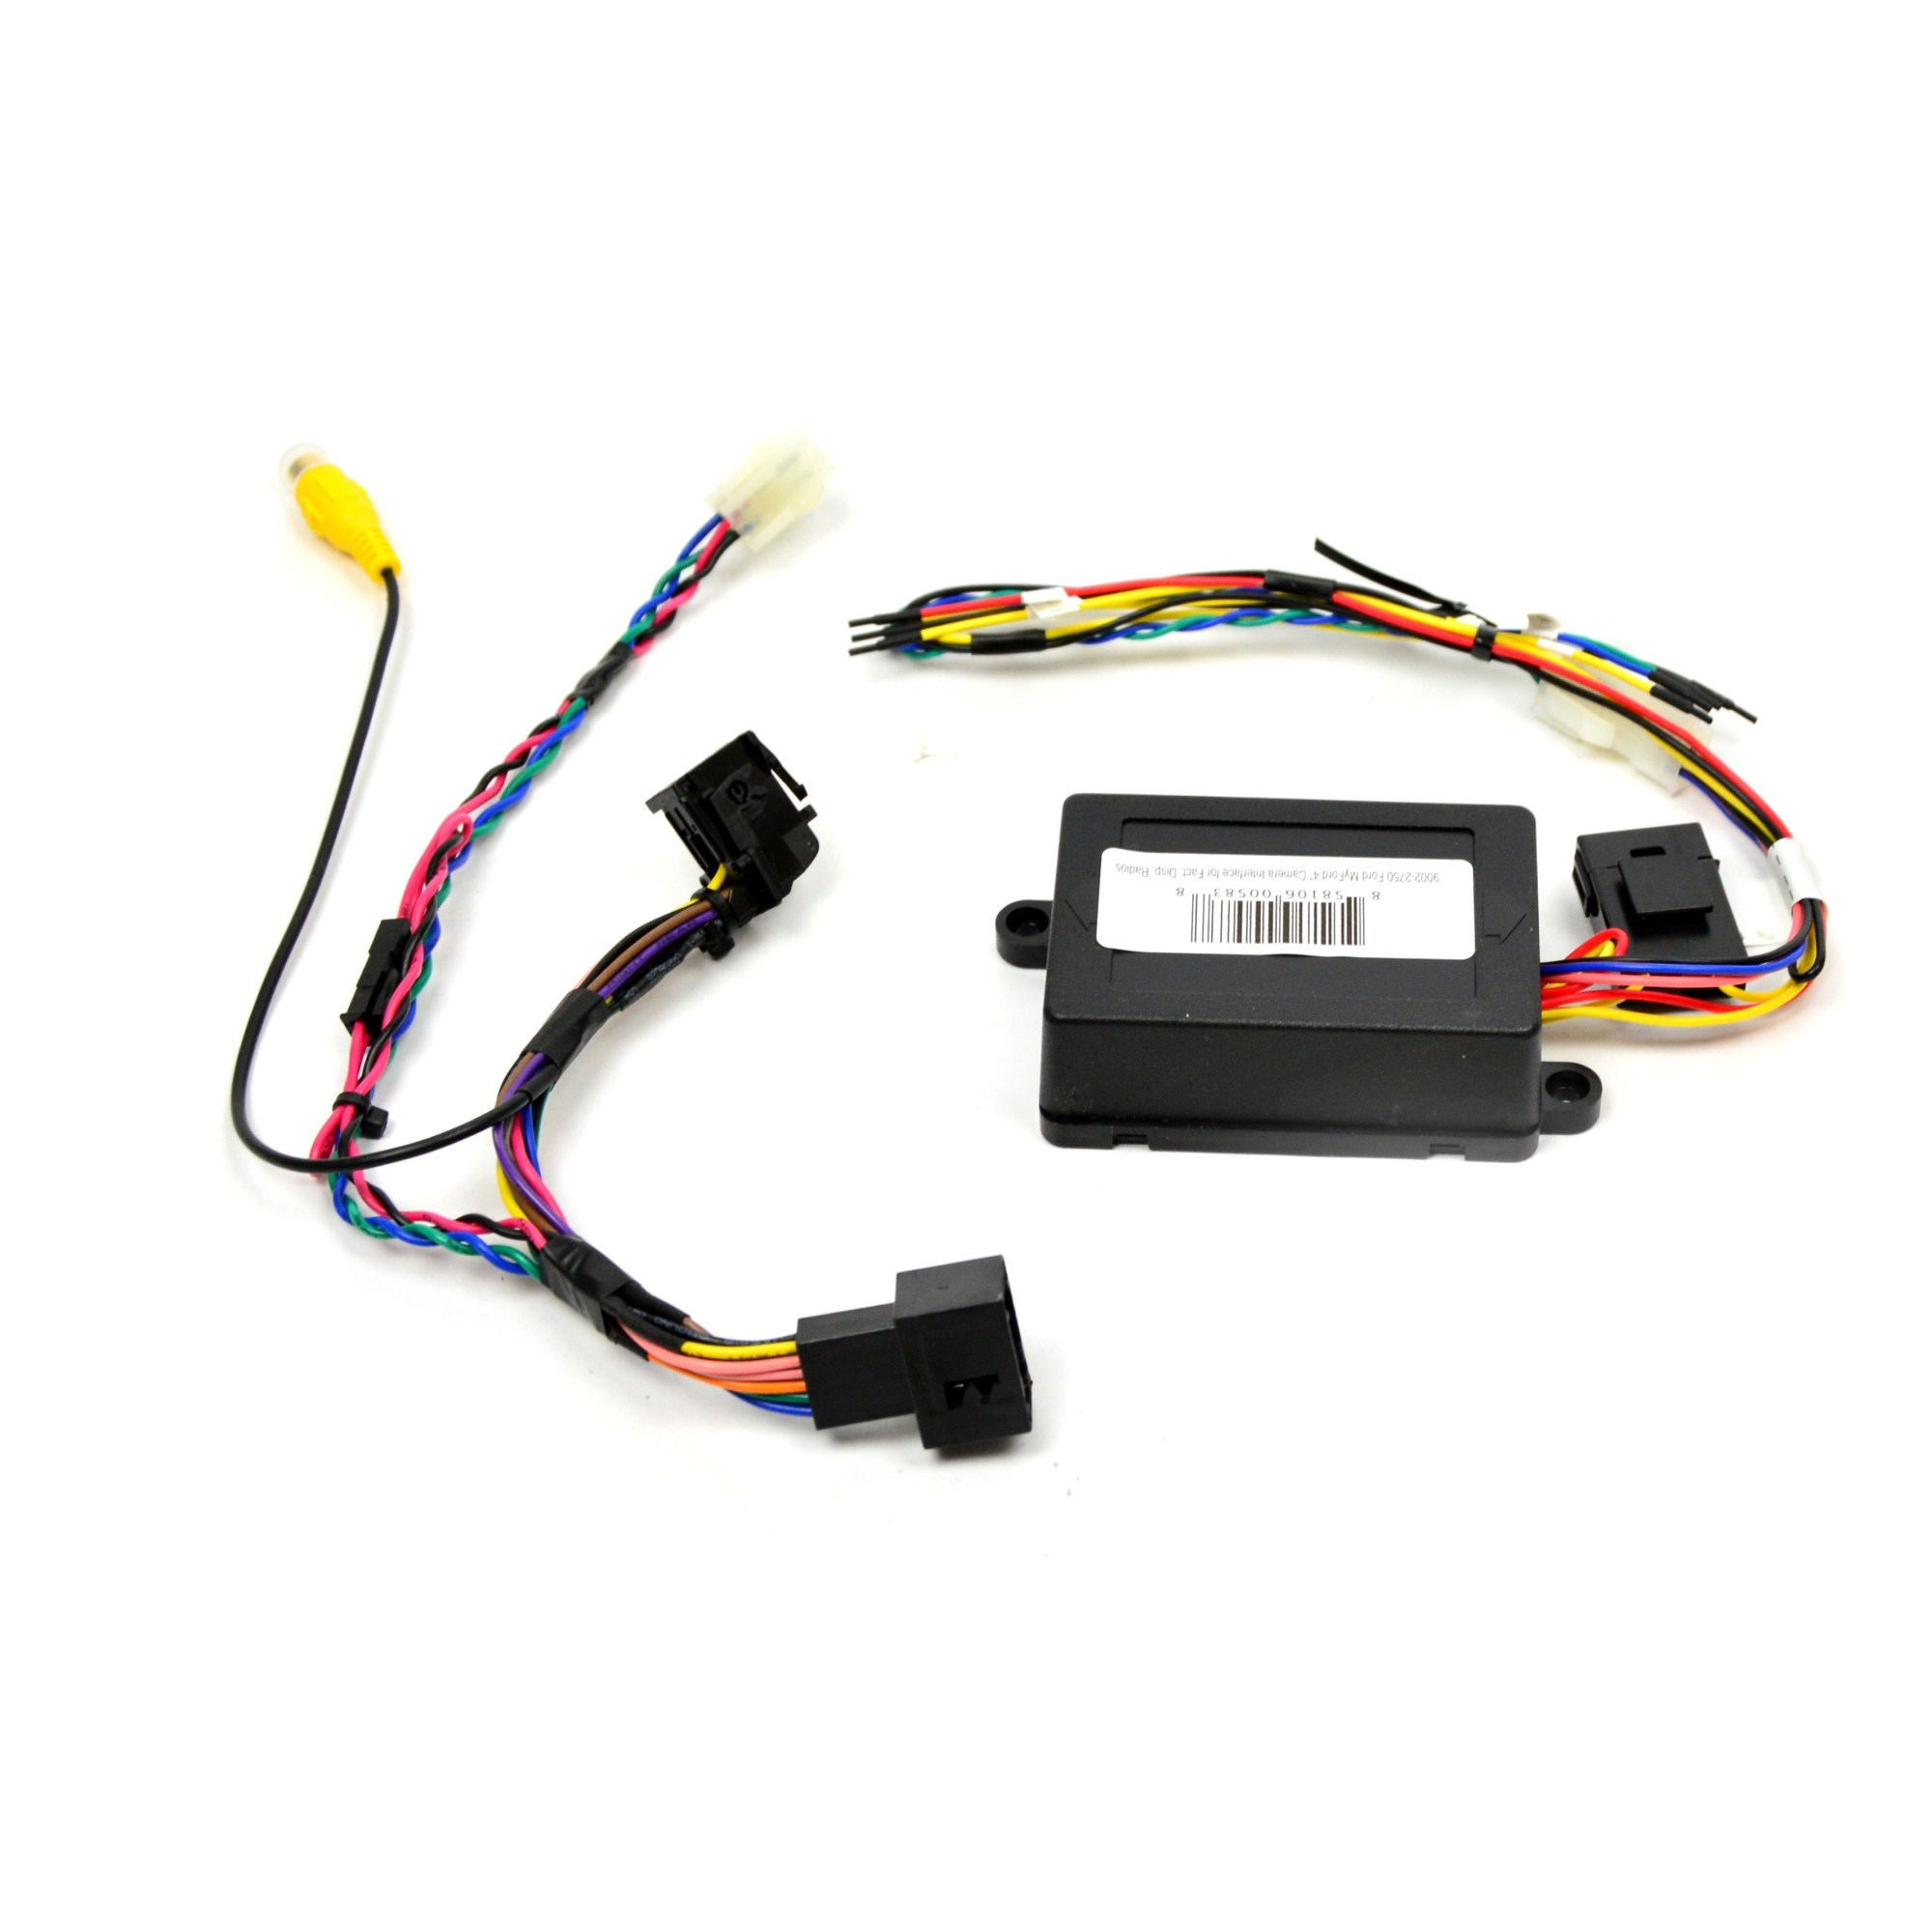 hight resolution of brandmotion 9002 2750 backup camera interface for integrate rear view camera to ford 4 inch factory display with 4 pin connector harness to module harness